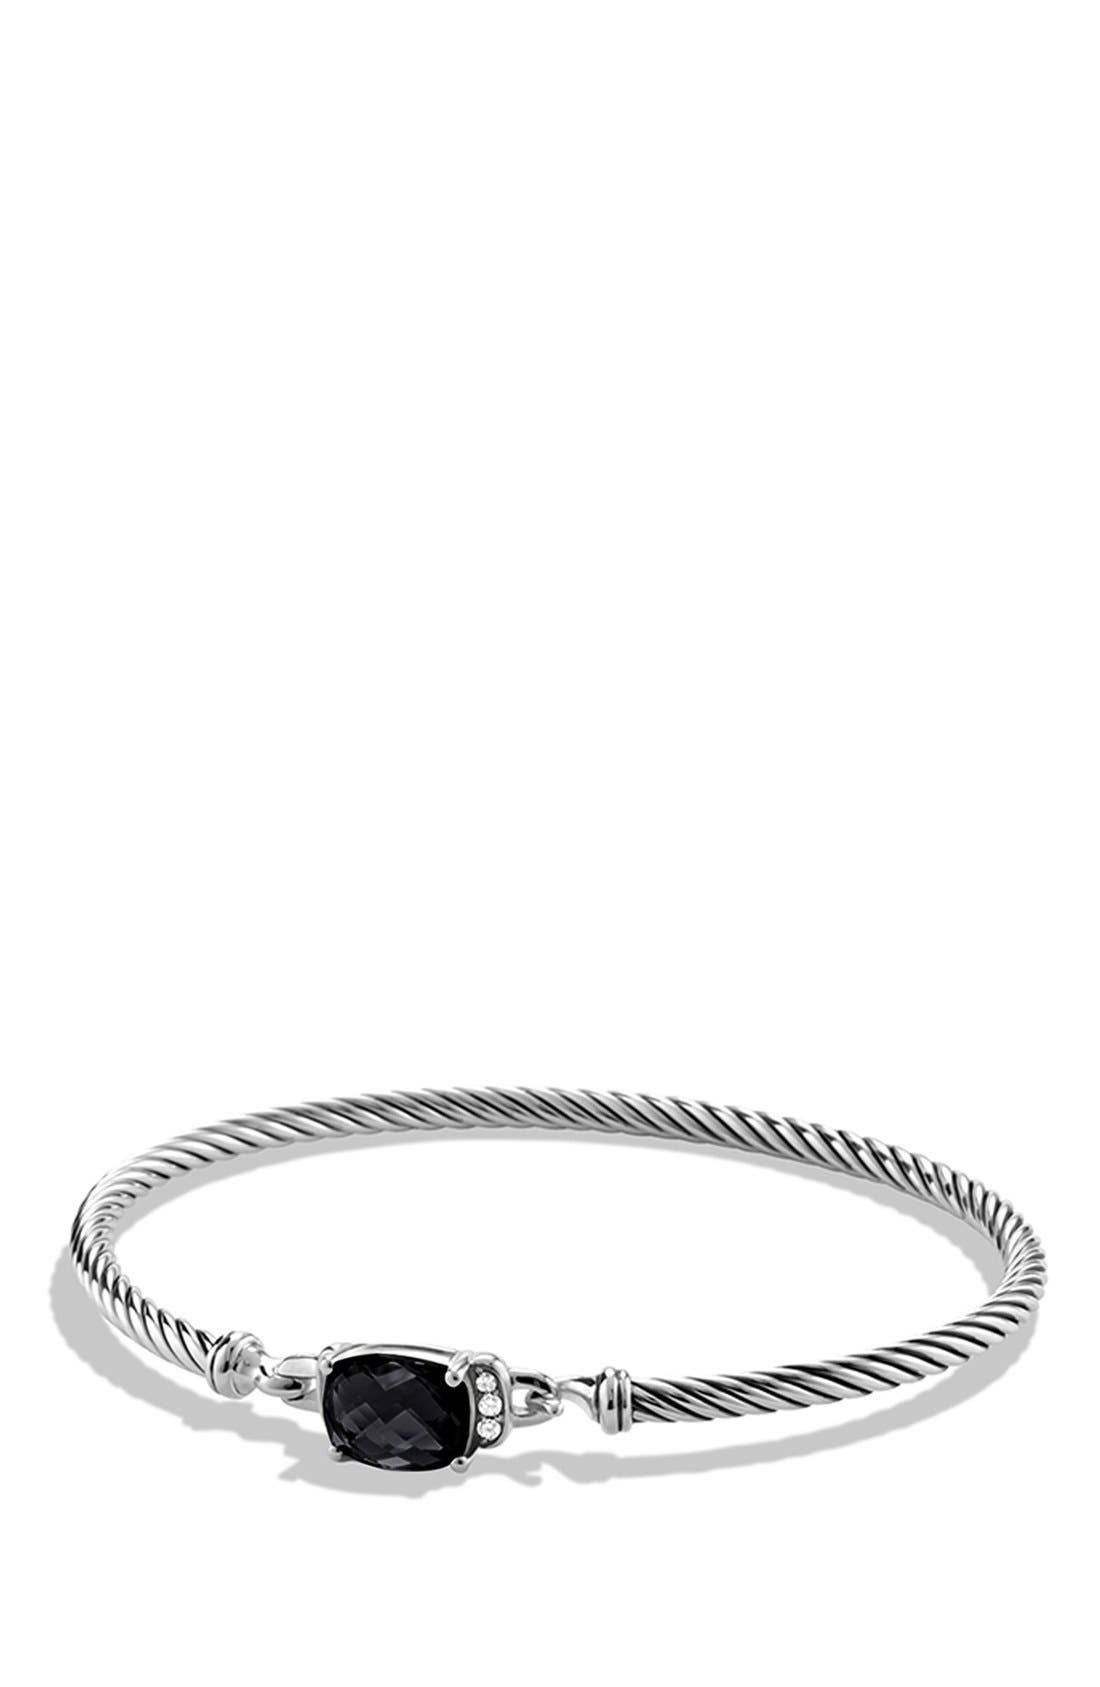 Main Image - David Yurman 'Petite Wheaton' Bracelet with Semiprecious Stone & Diamonds